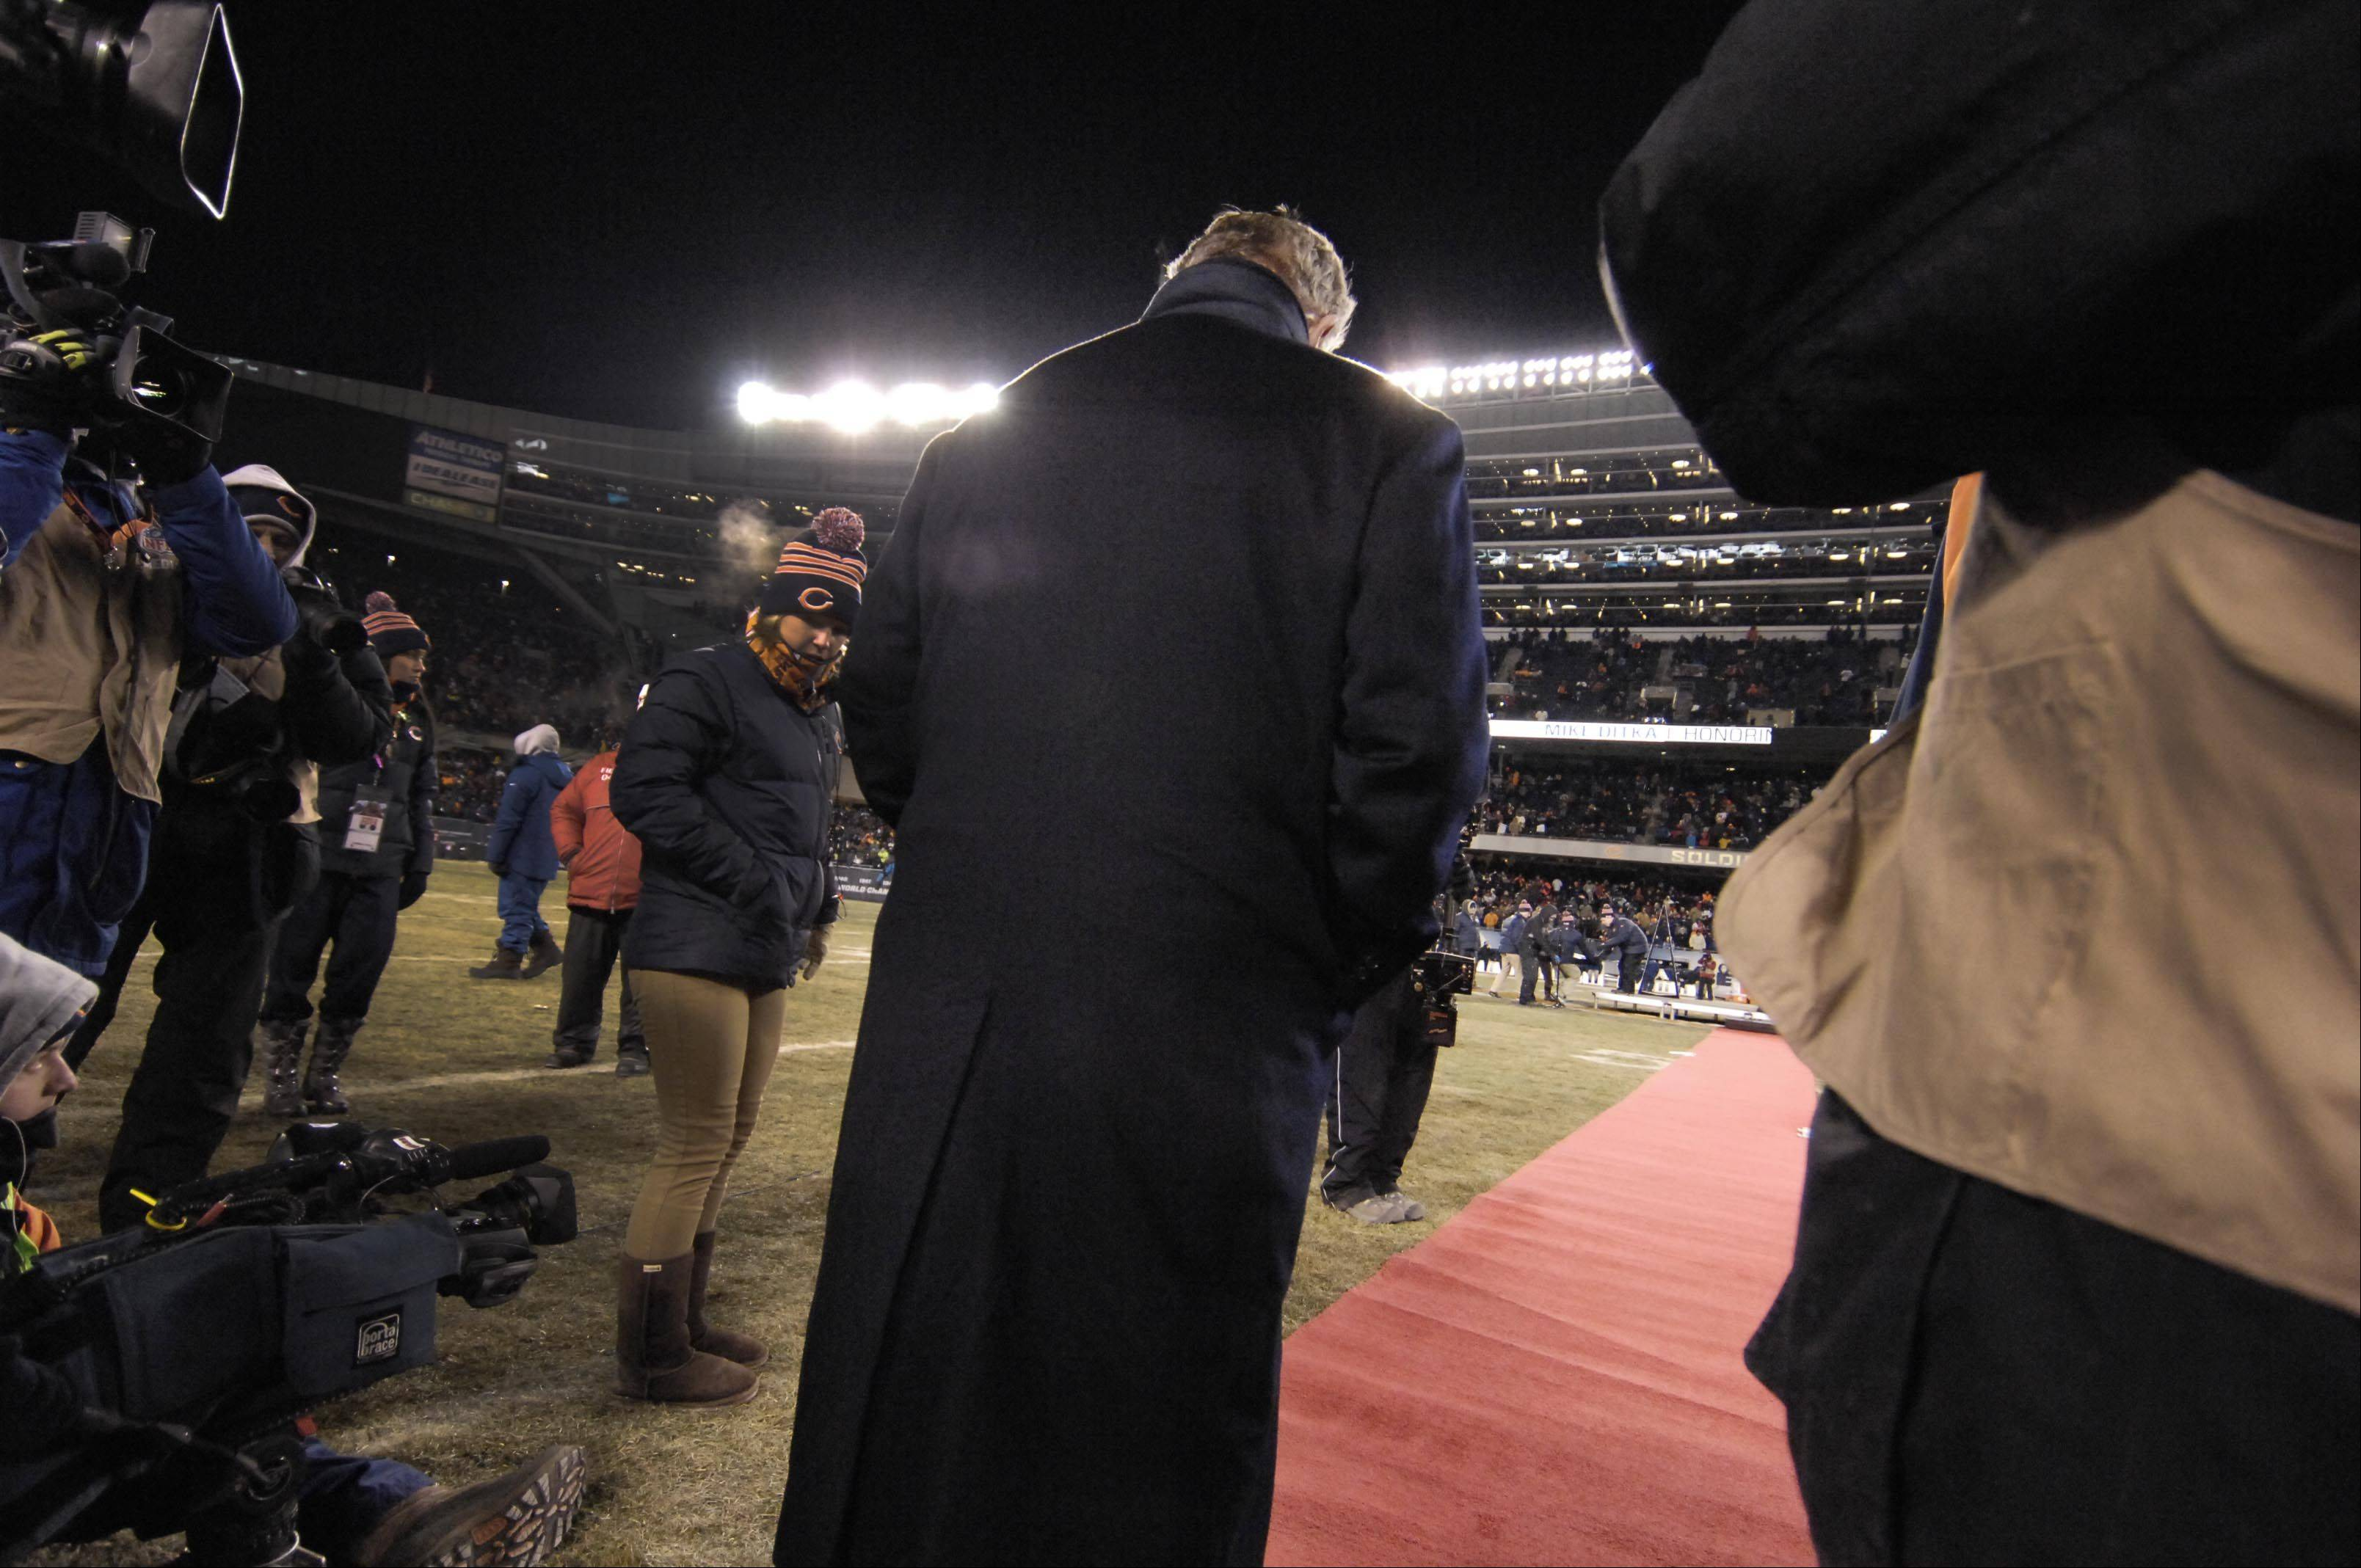 Former Chicago Bears head coach Mike Ditka waits as he is introduced for his jersey retirement ceremony.